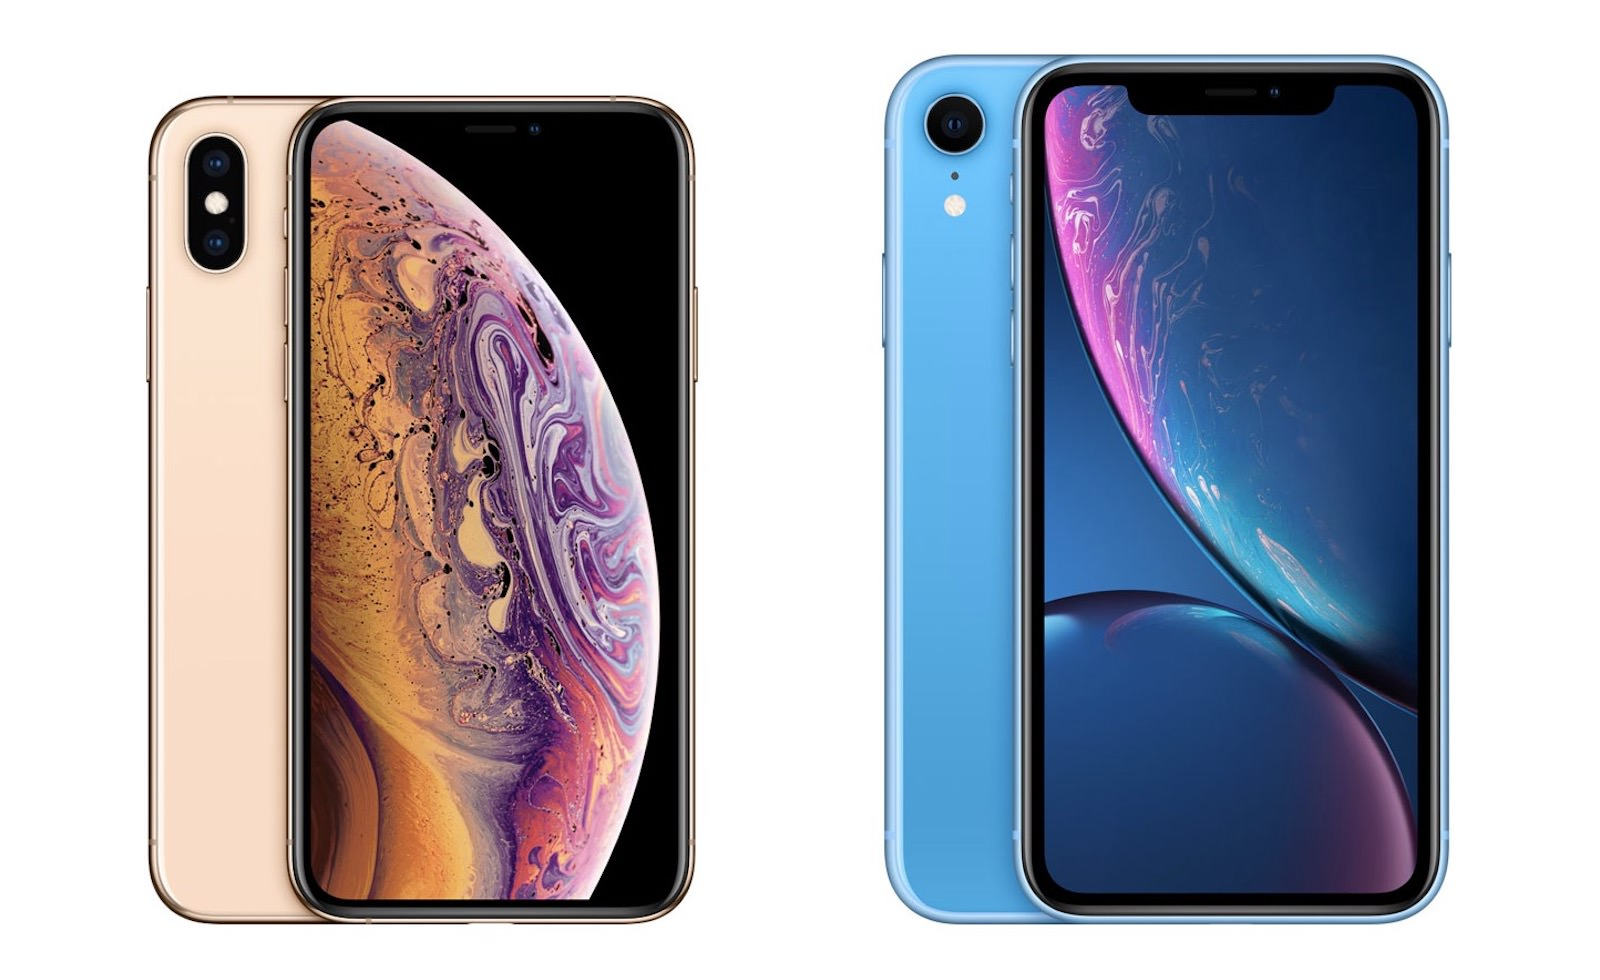 iphonexs-iphonexr-comparison.jpg